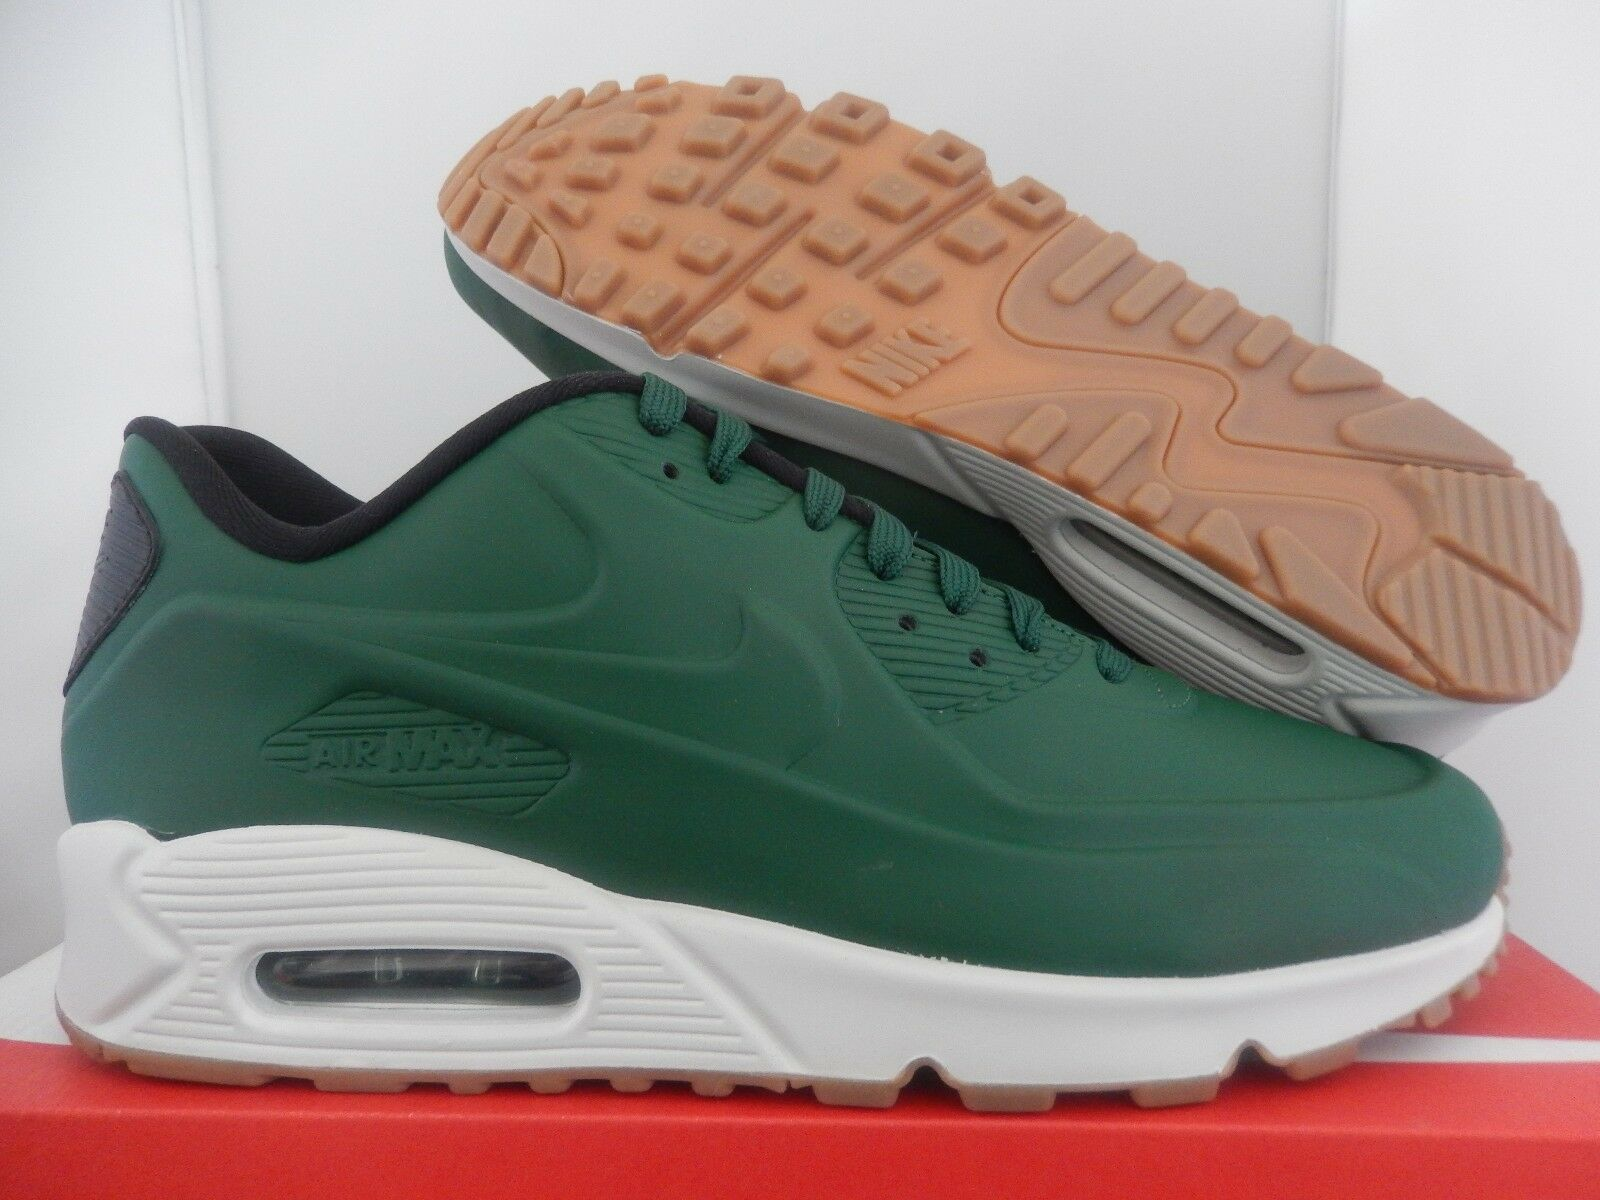 NIKE AIR MAX MAX MAX 90 VT QS GORGE verde-LIGHT Marronee SZ 11.5 [831114-300] b058f8